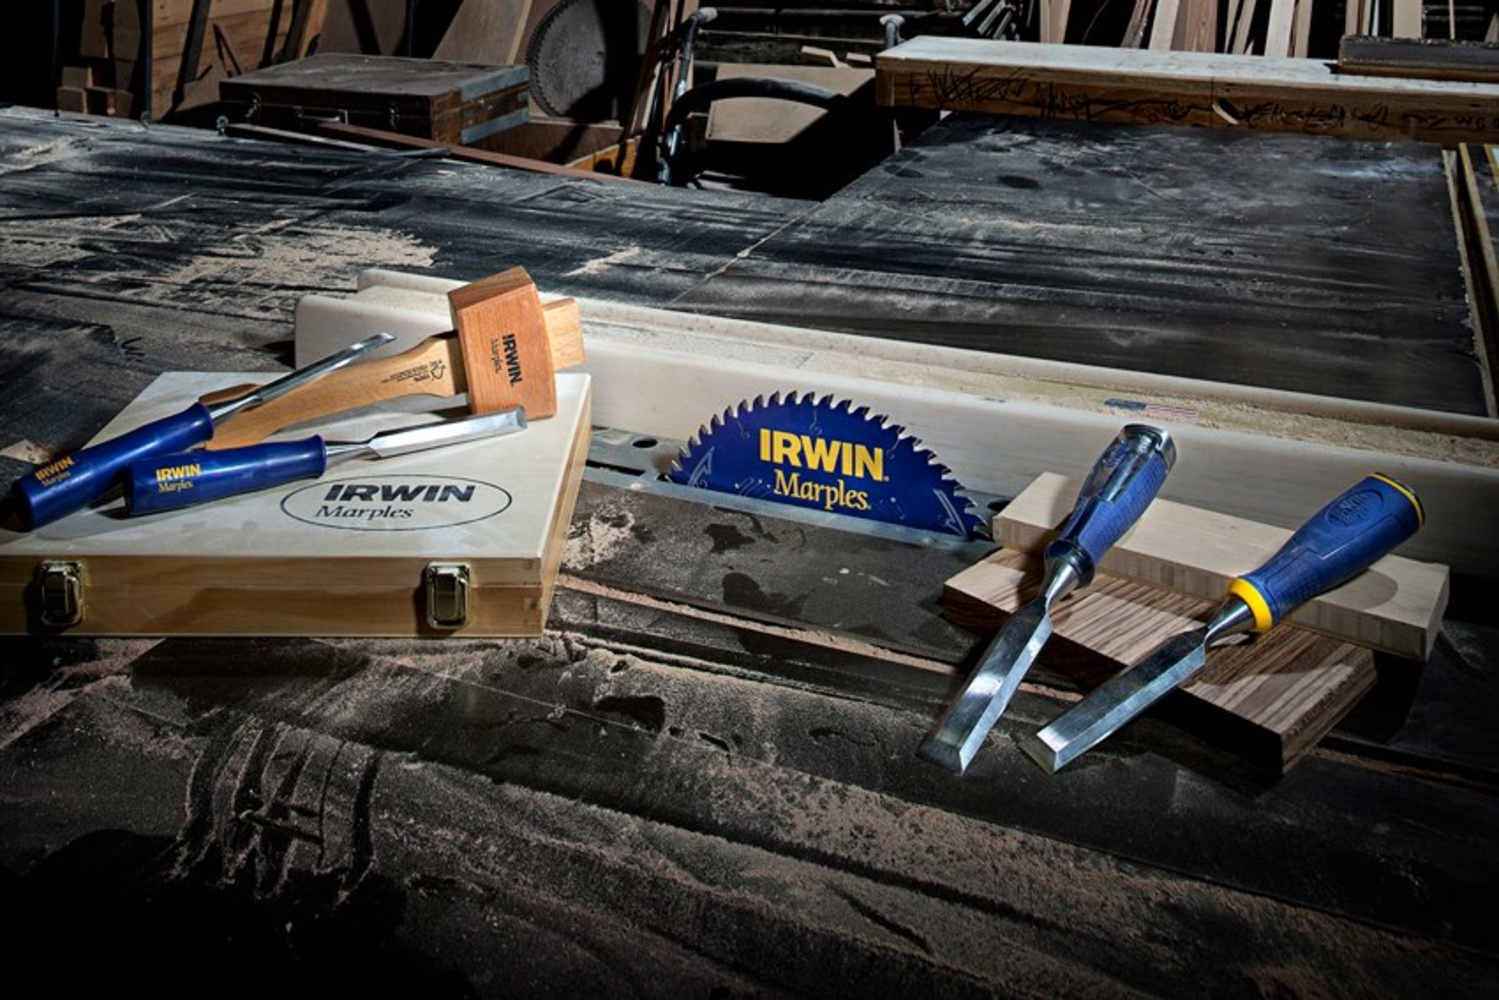 Irwin Tools in Sioux Falls, SD